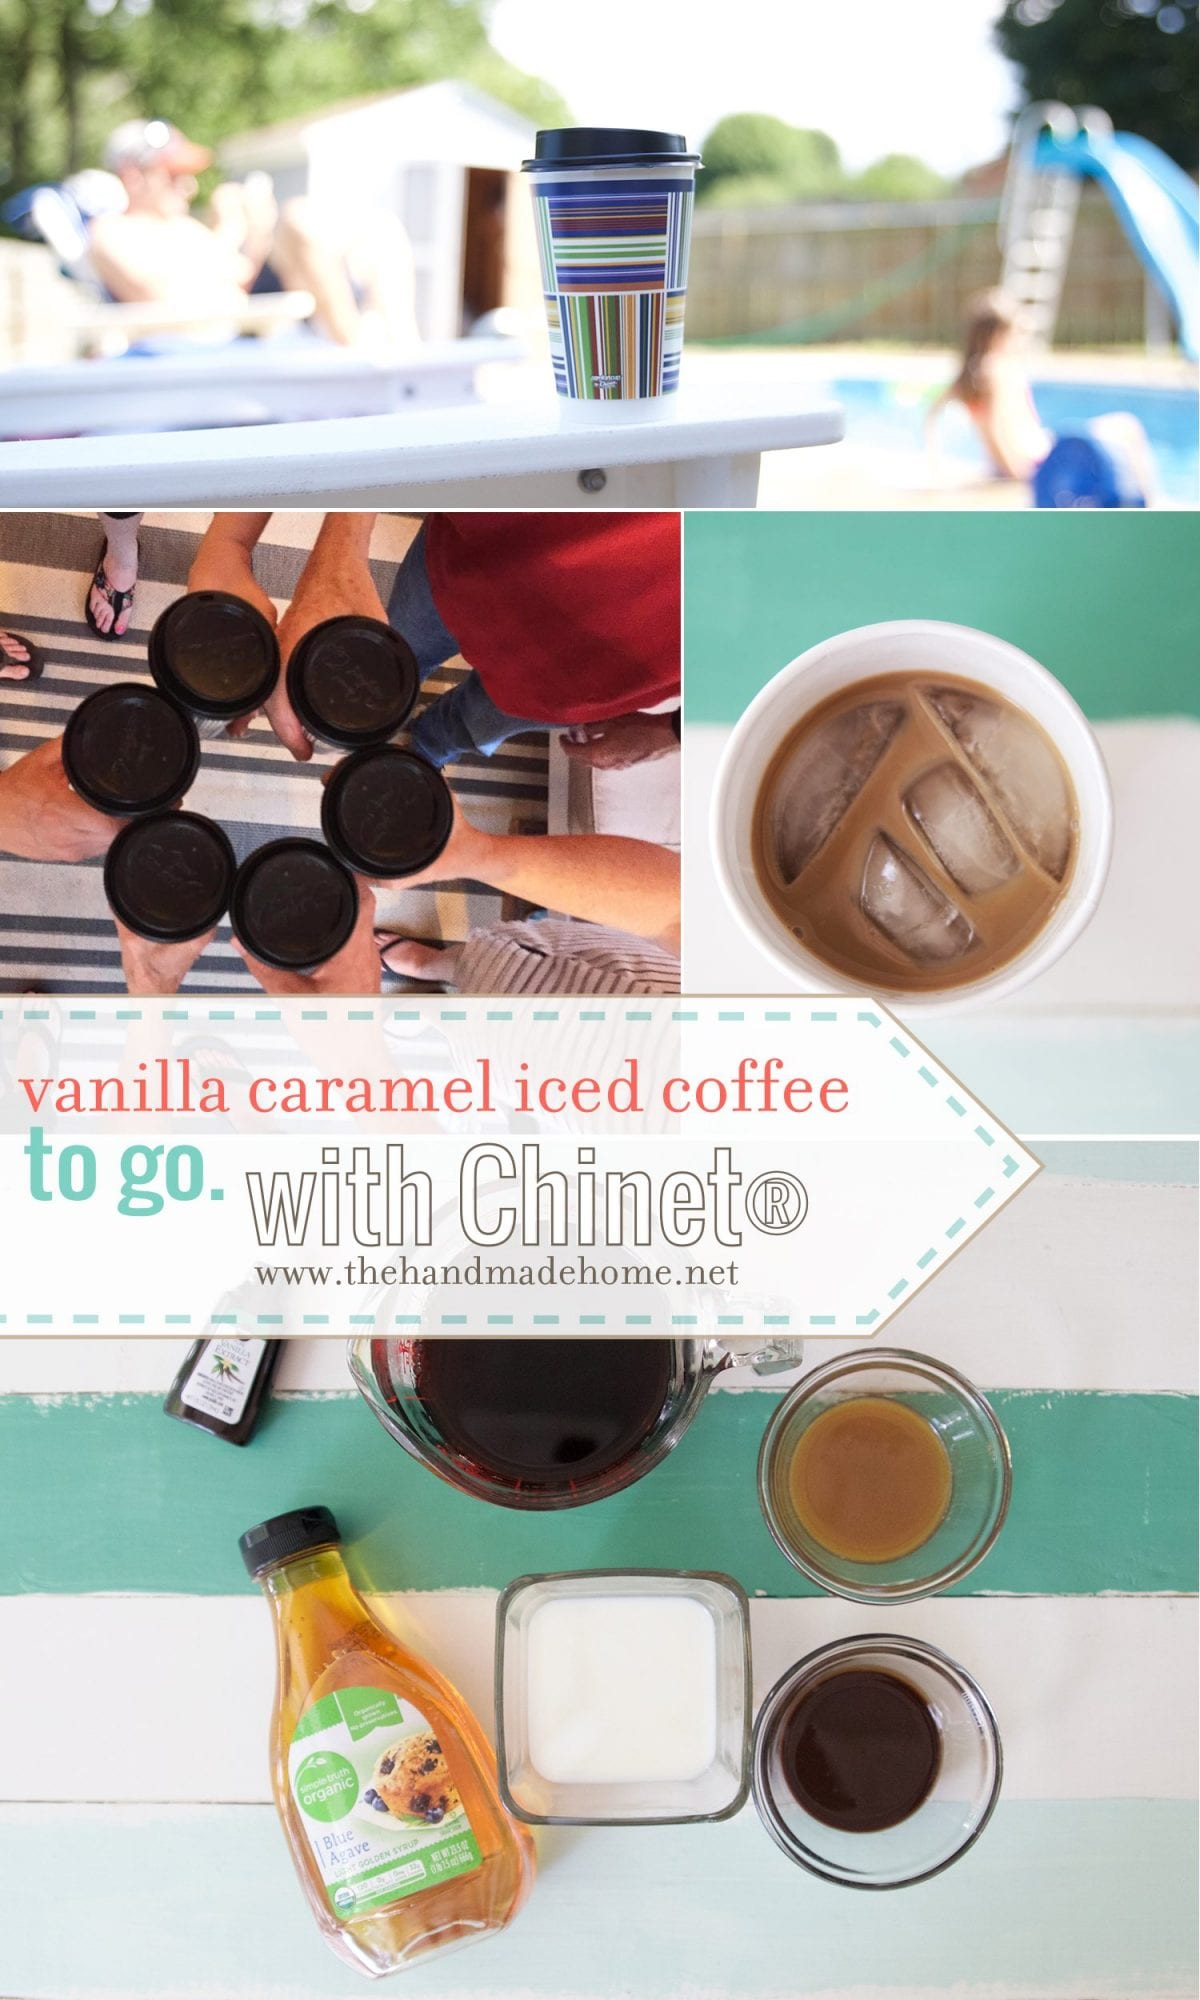 canilla_caramel_iced_coffee_to_go_with_chinet